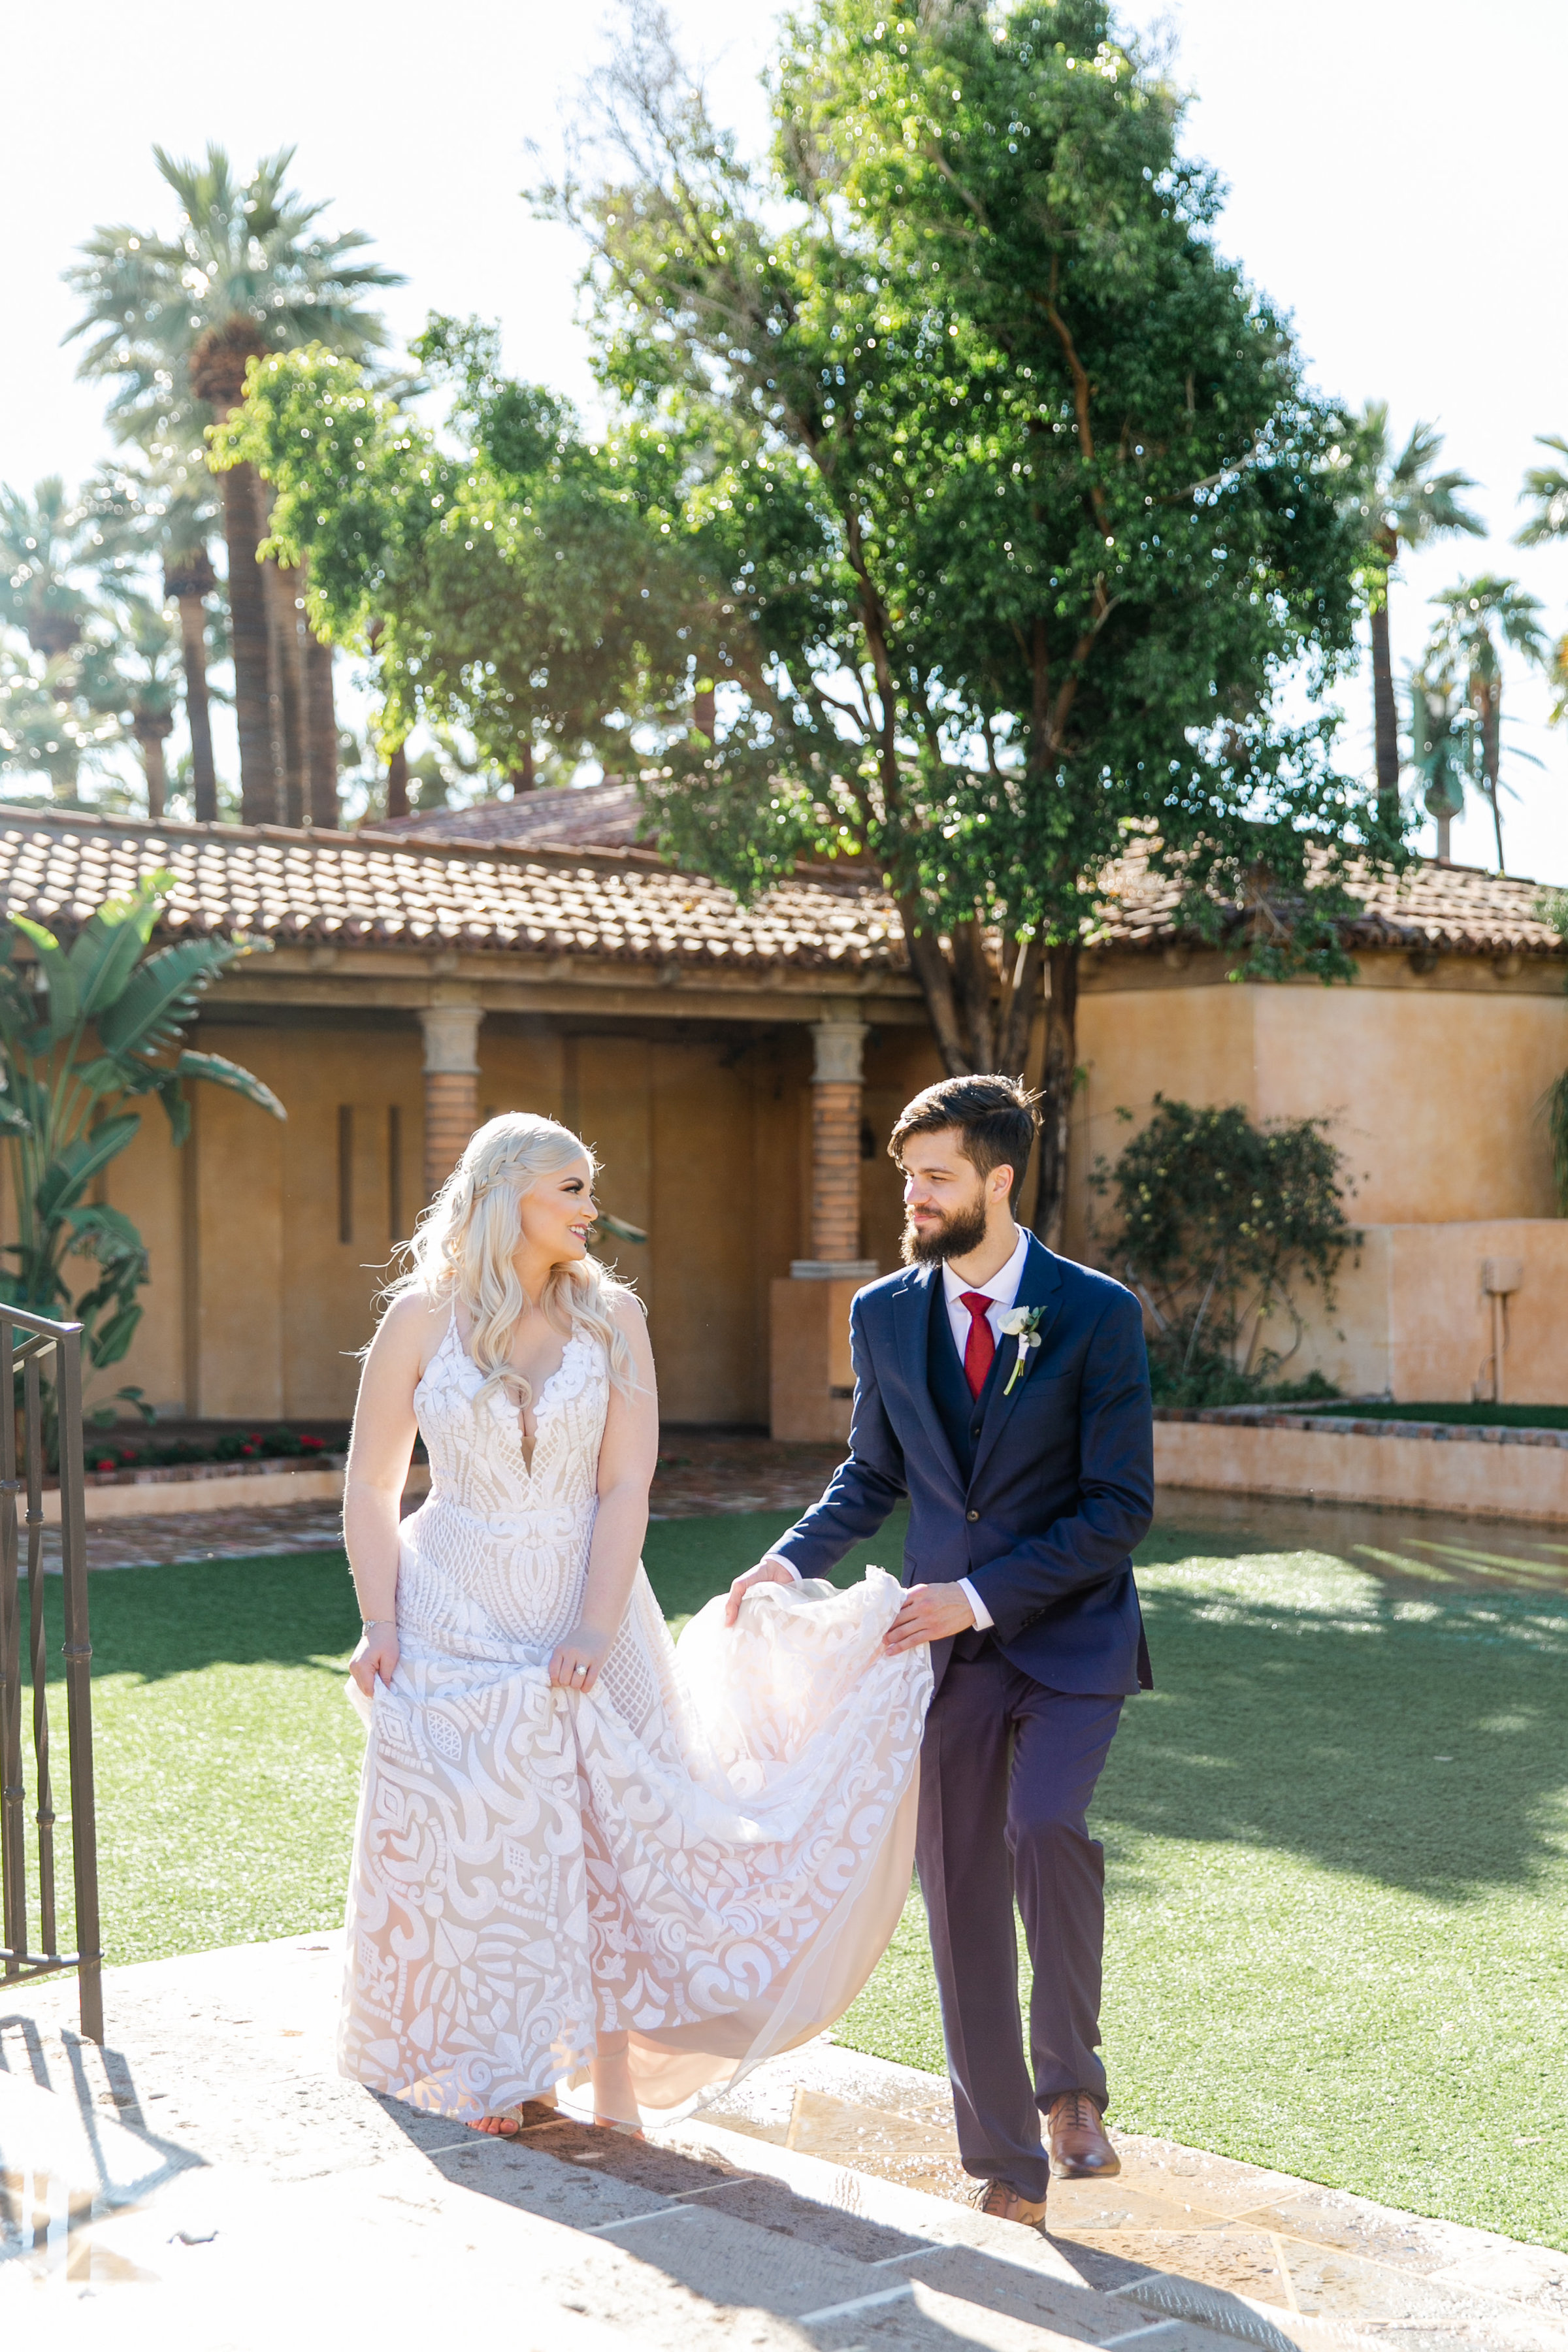 Karlie Colleen Photography - The Royal Palms Wedding - Some Like It Classic - Alex & Sam-172